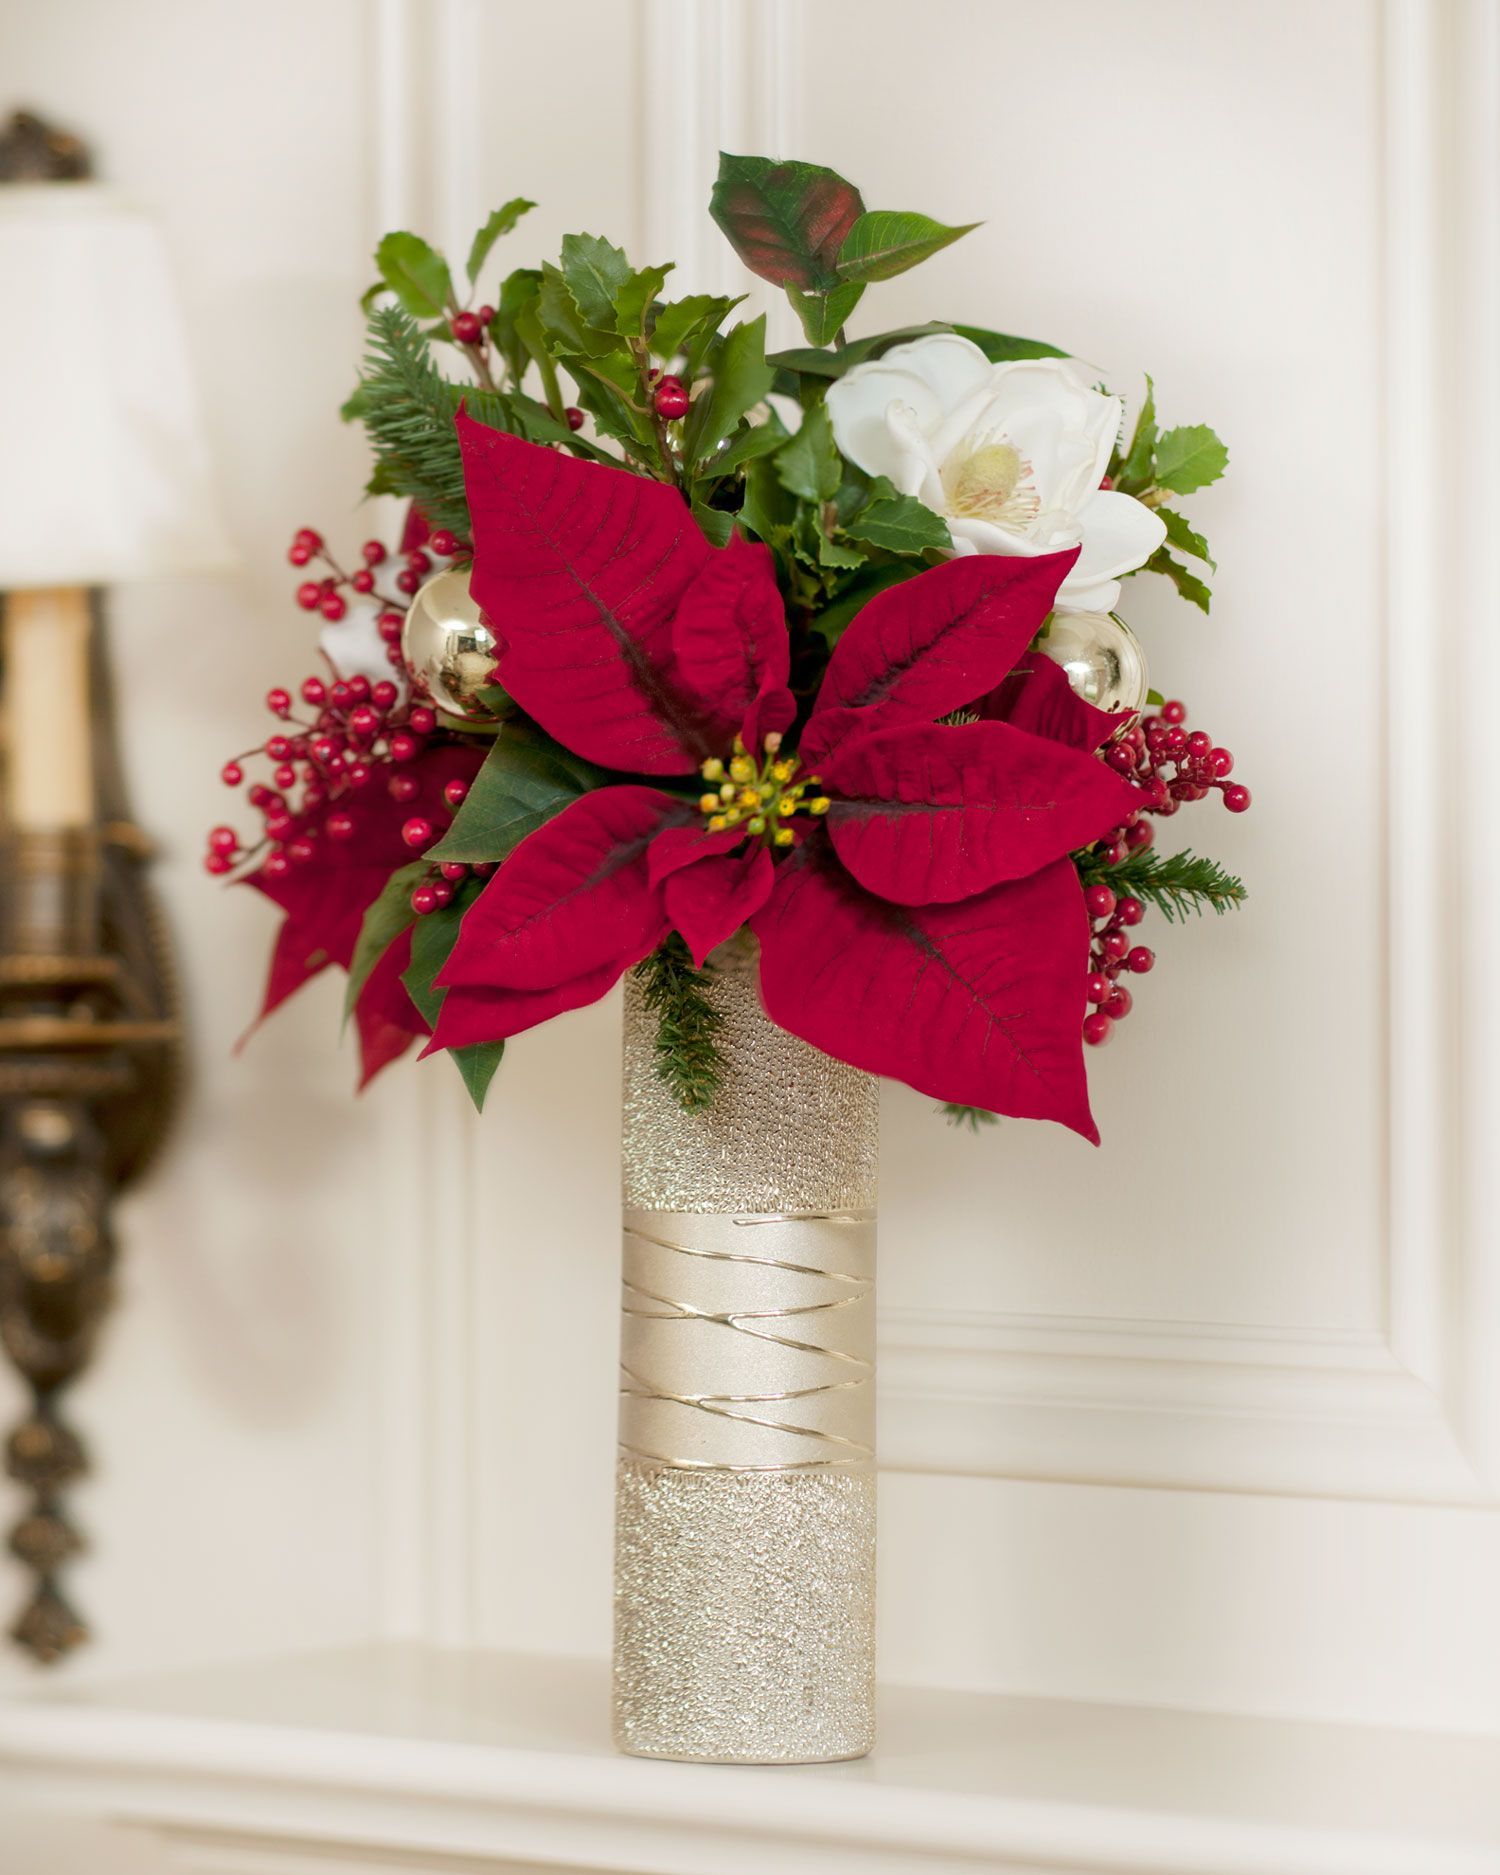 Deep red poinsettias and creamy white magnolias combine